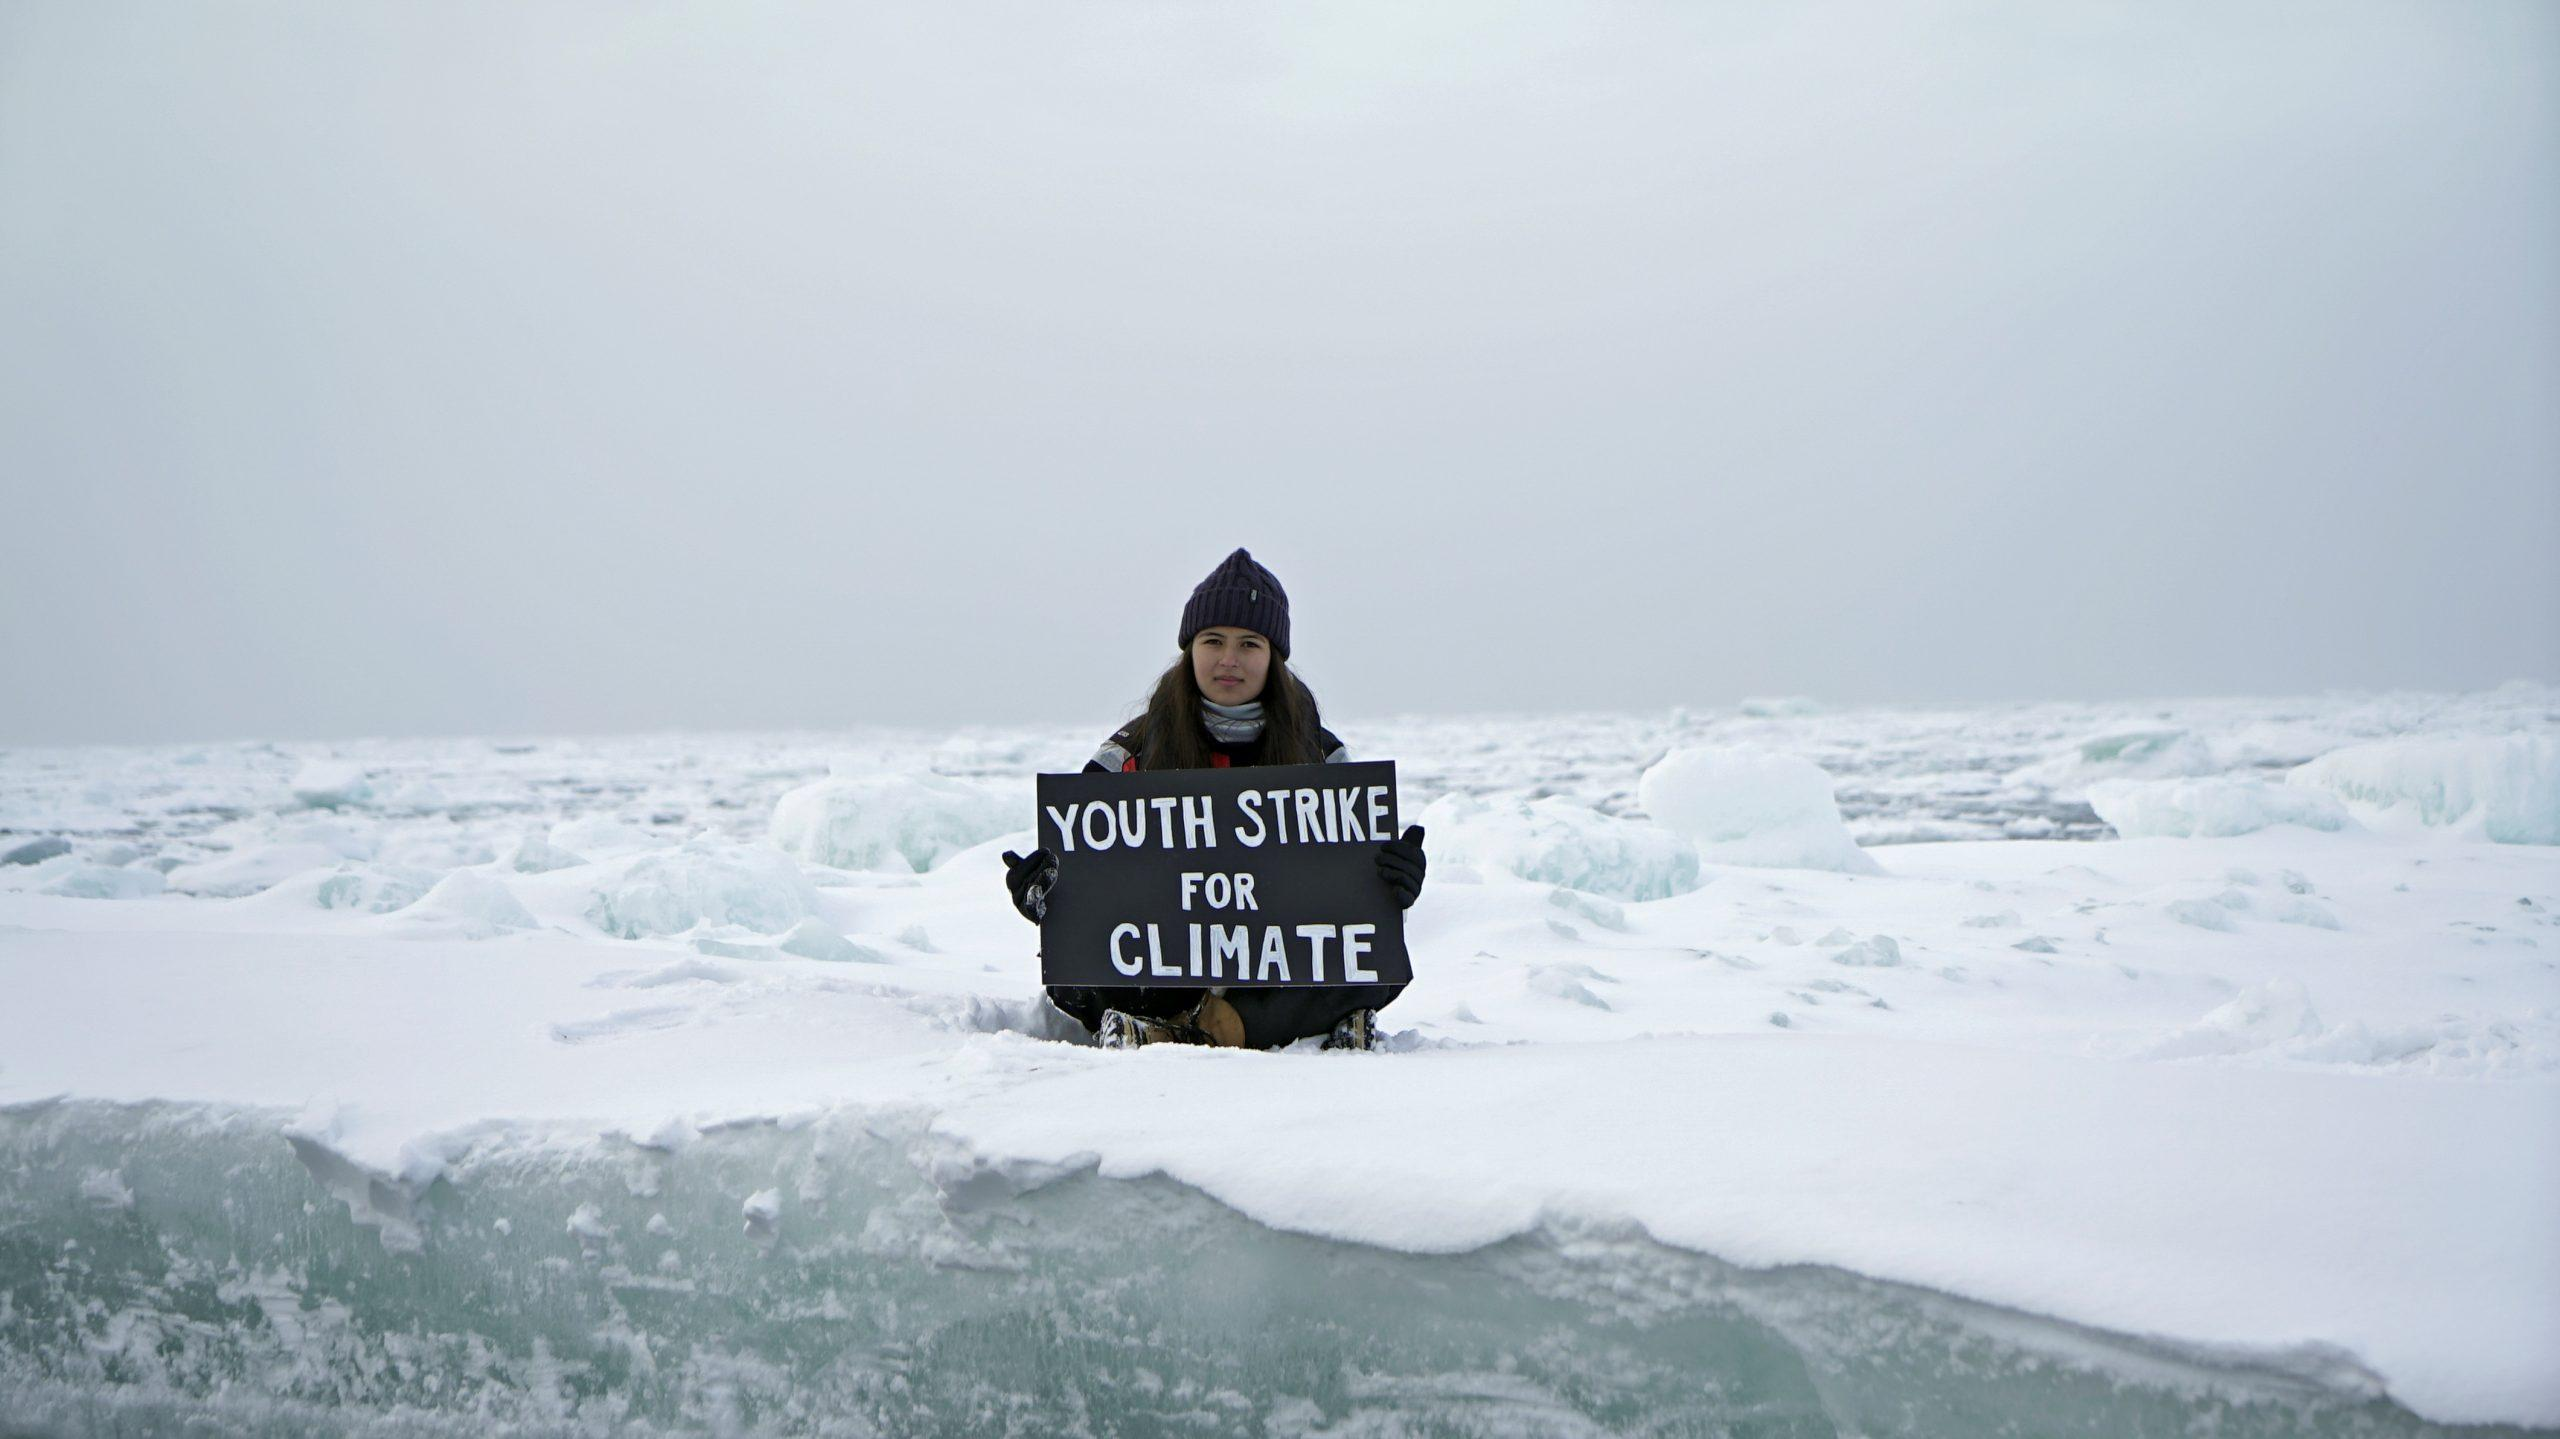 Teenage British activist stages climate protest on Arctic ice floe - GLOBAL HEROES MAGAZINE